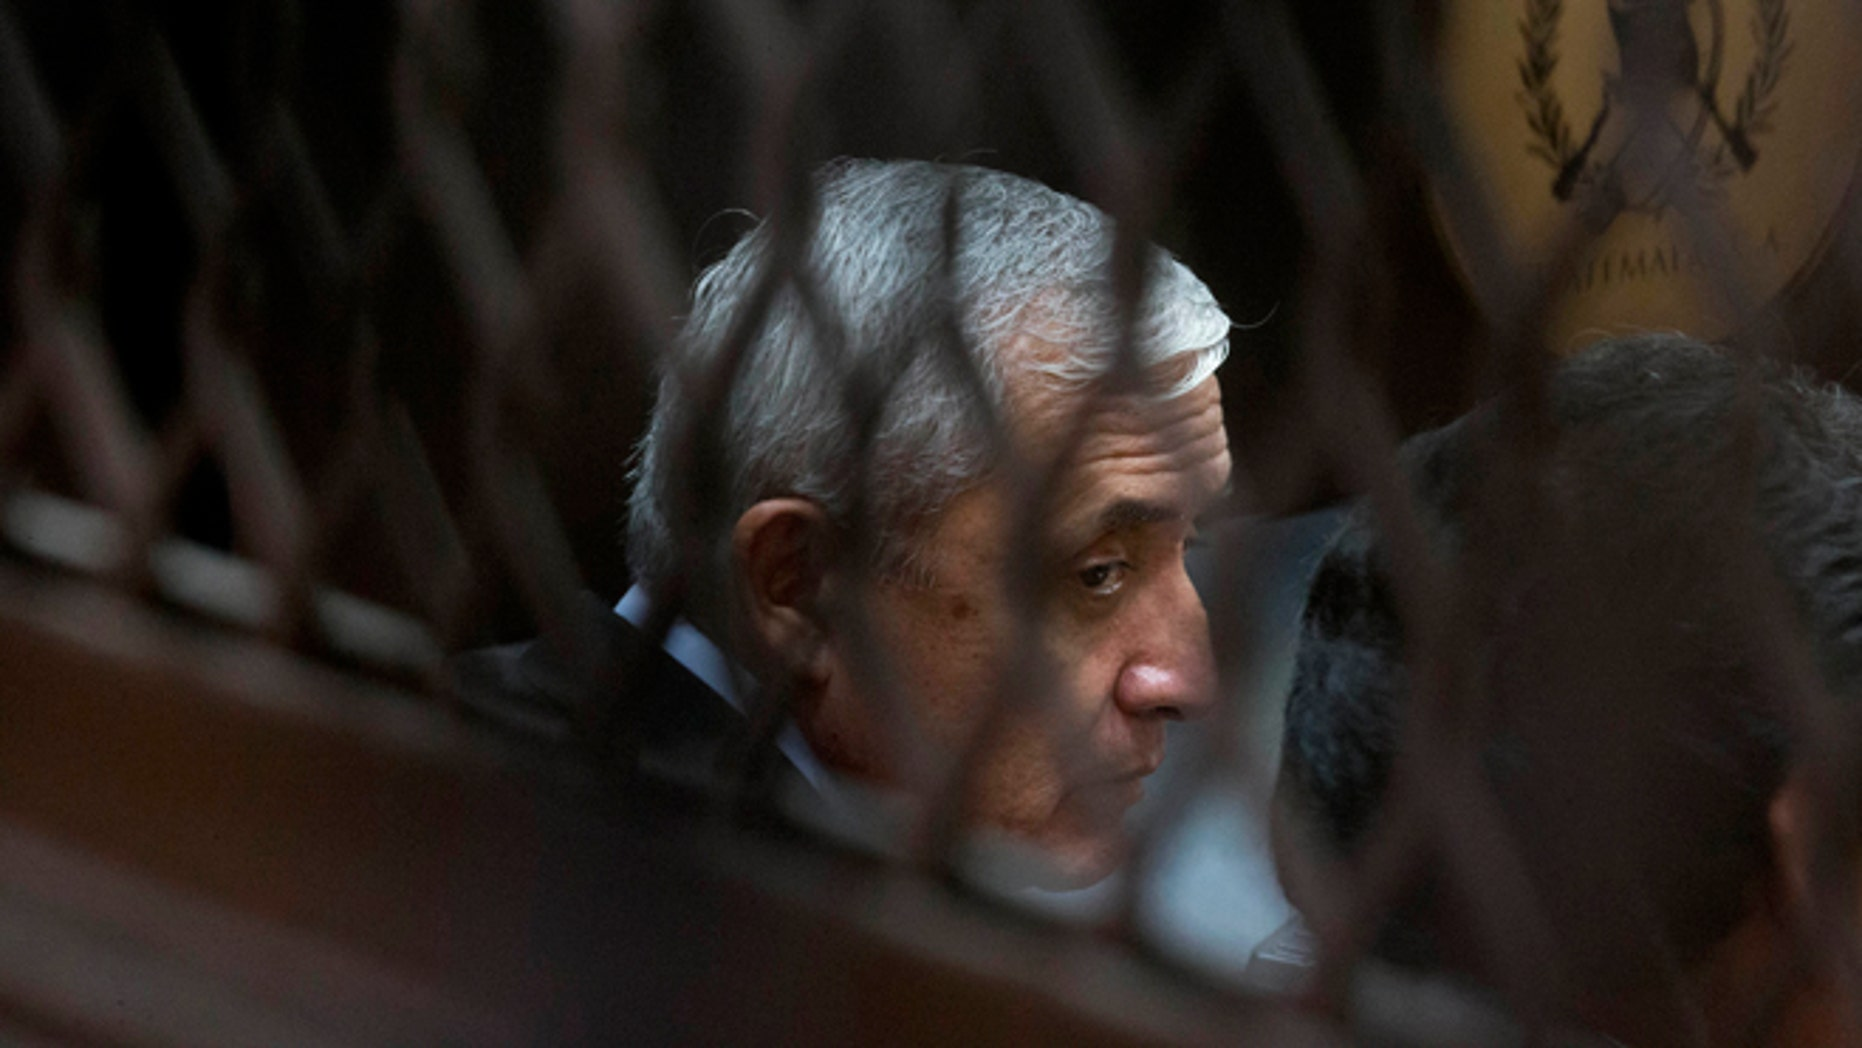 Guatemala's former president Otto Pérez Molina sits in court in Guatemala City, Sept. 8, 2015.